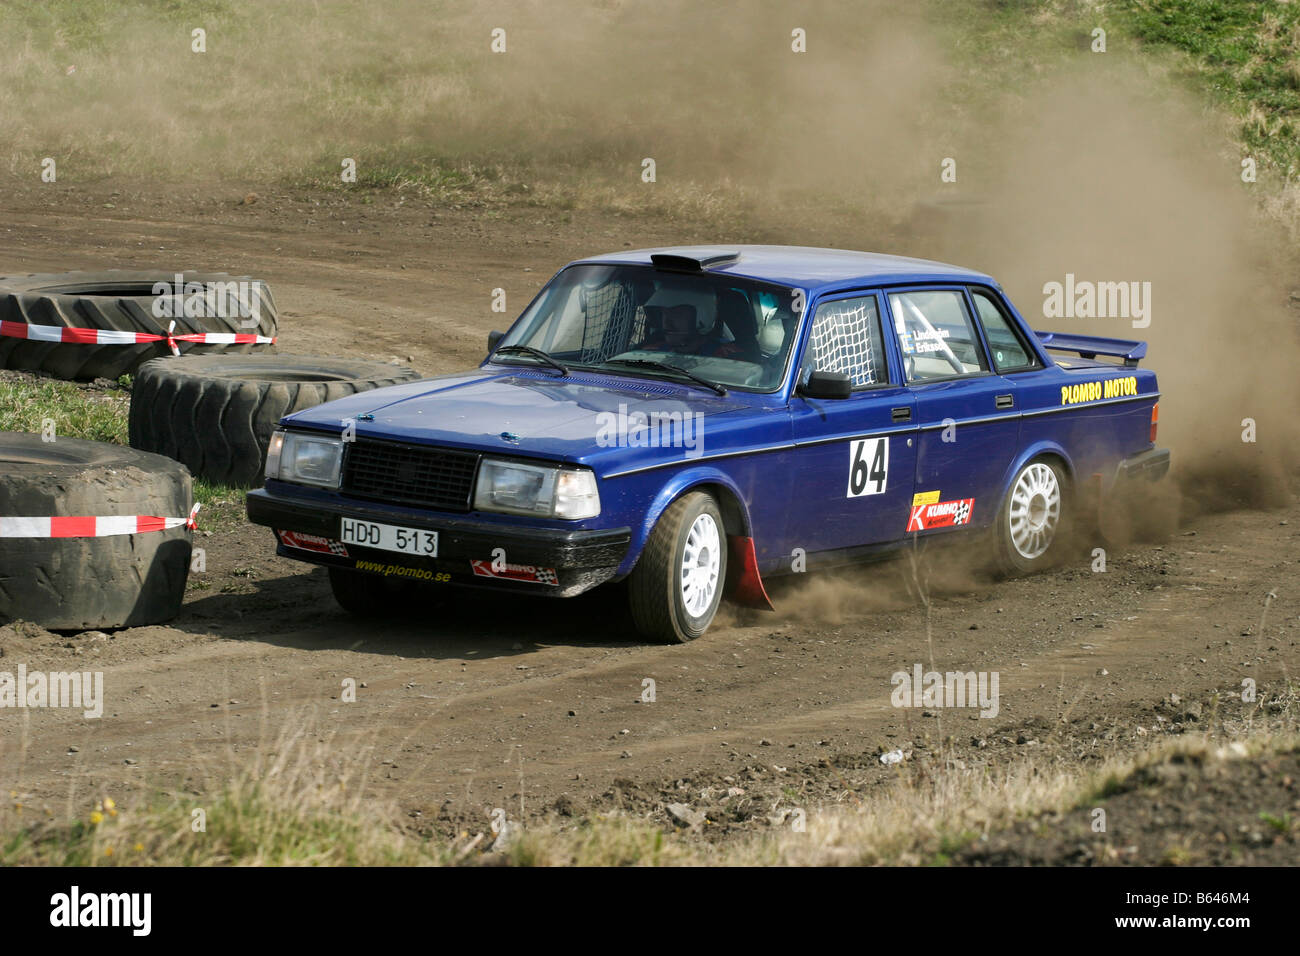 Volvo rally car in a race Stock Photo: 20991380 - Alamy